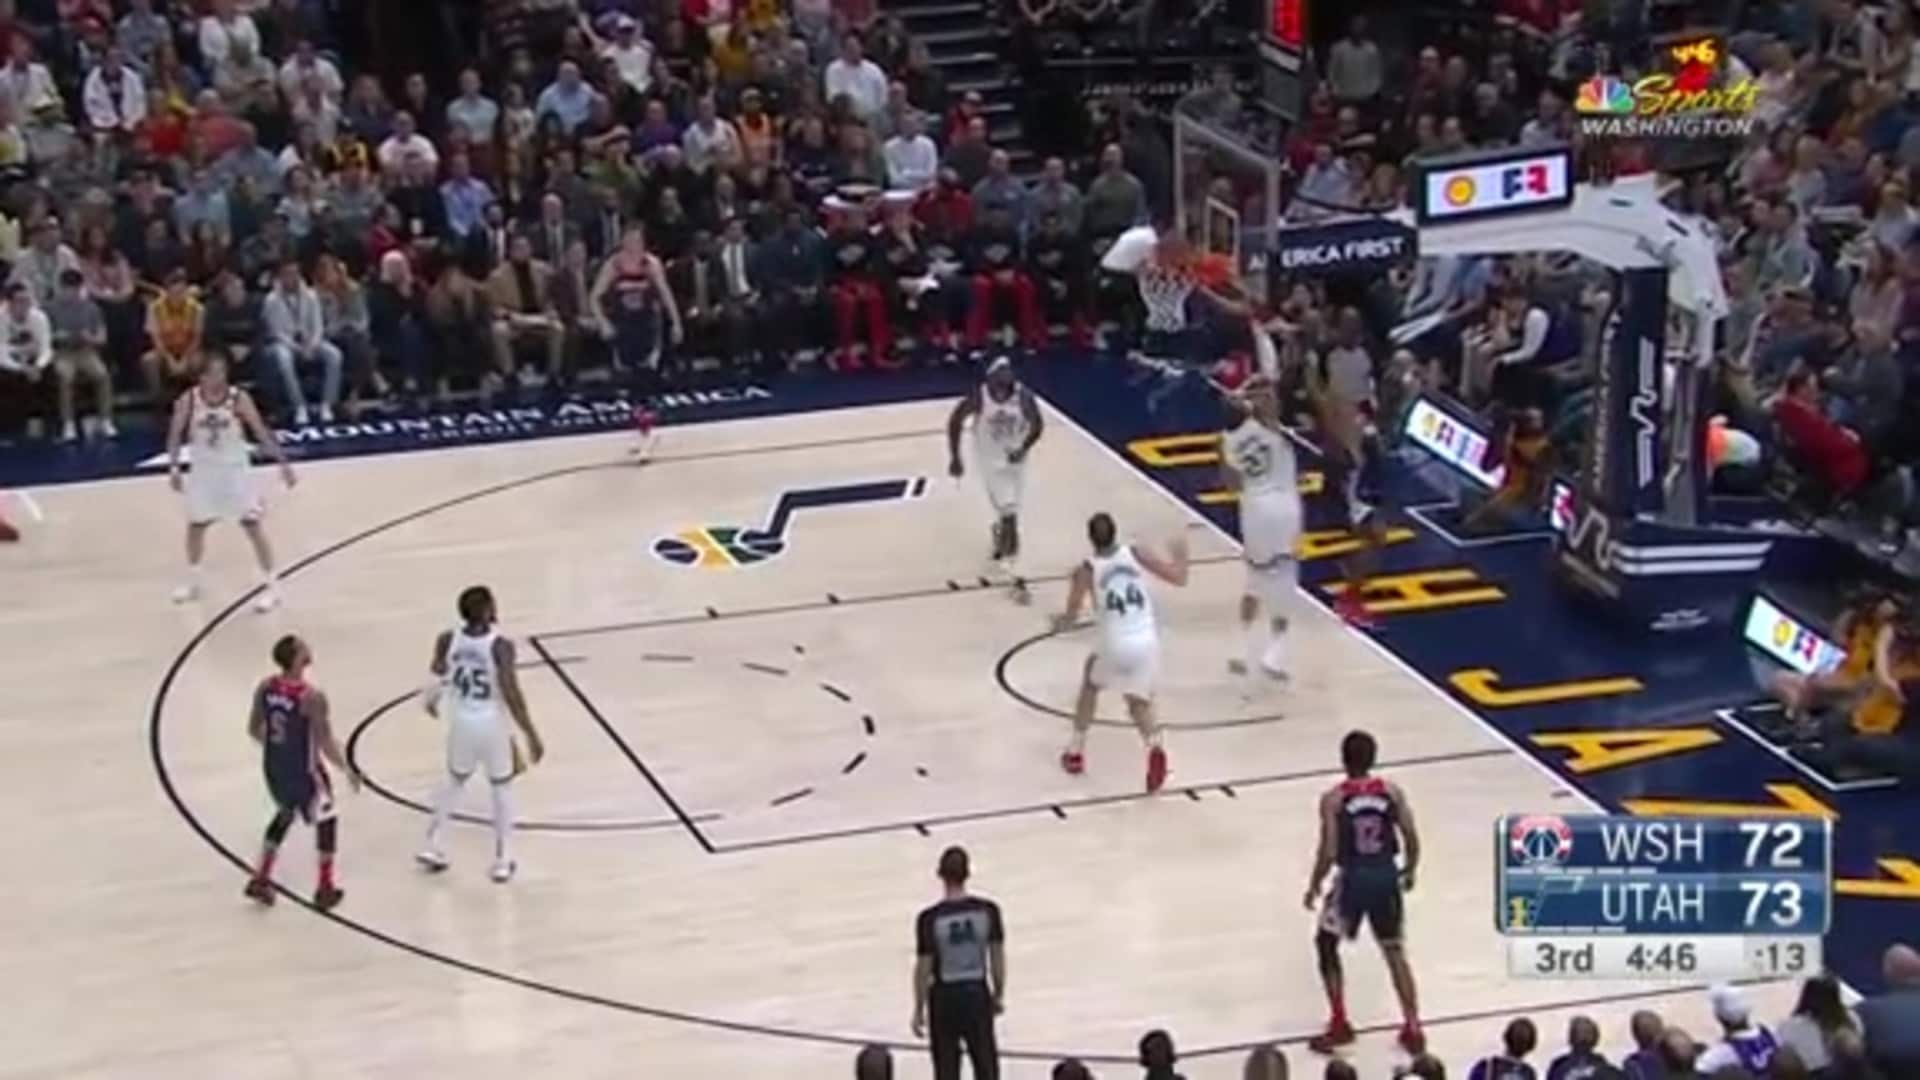 Highlights: Rui Hachimura vs. Jazz - 02/28/20